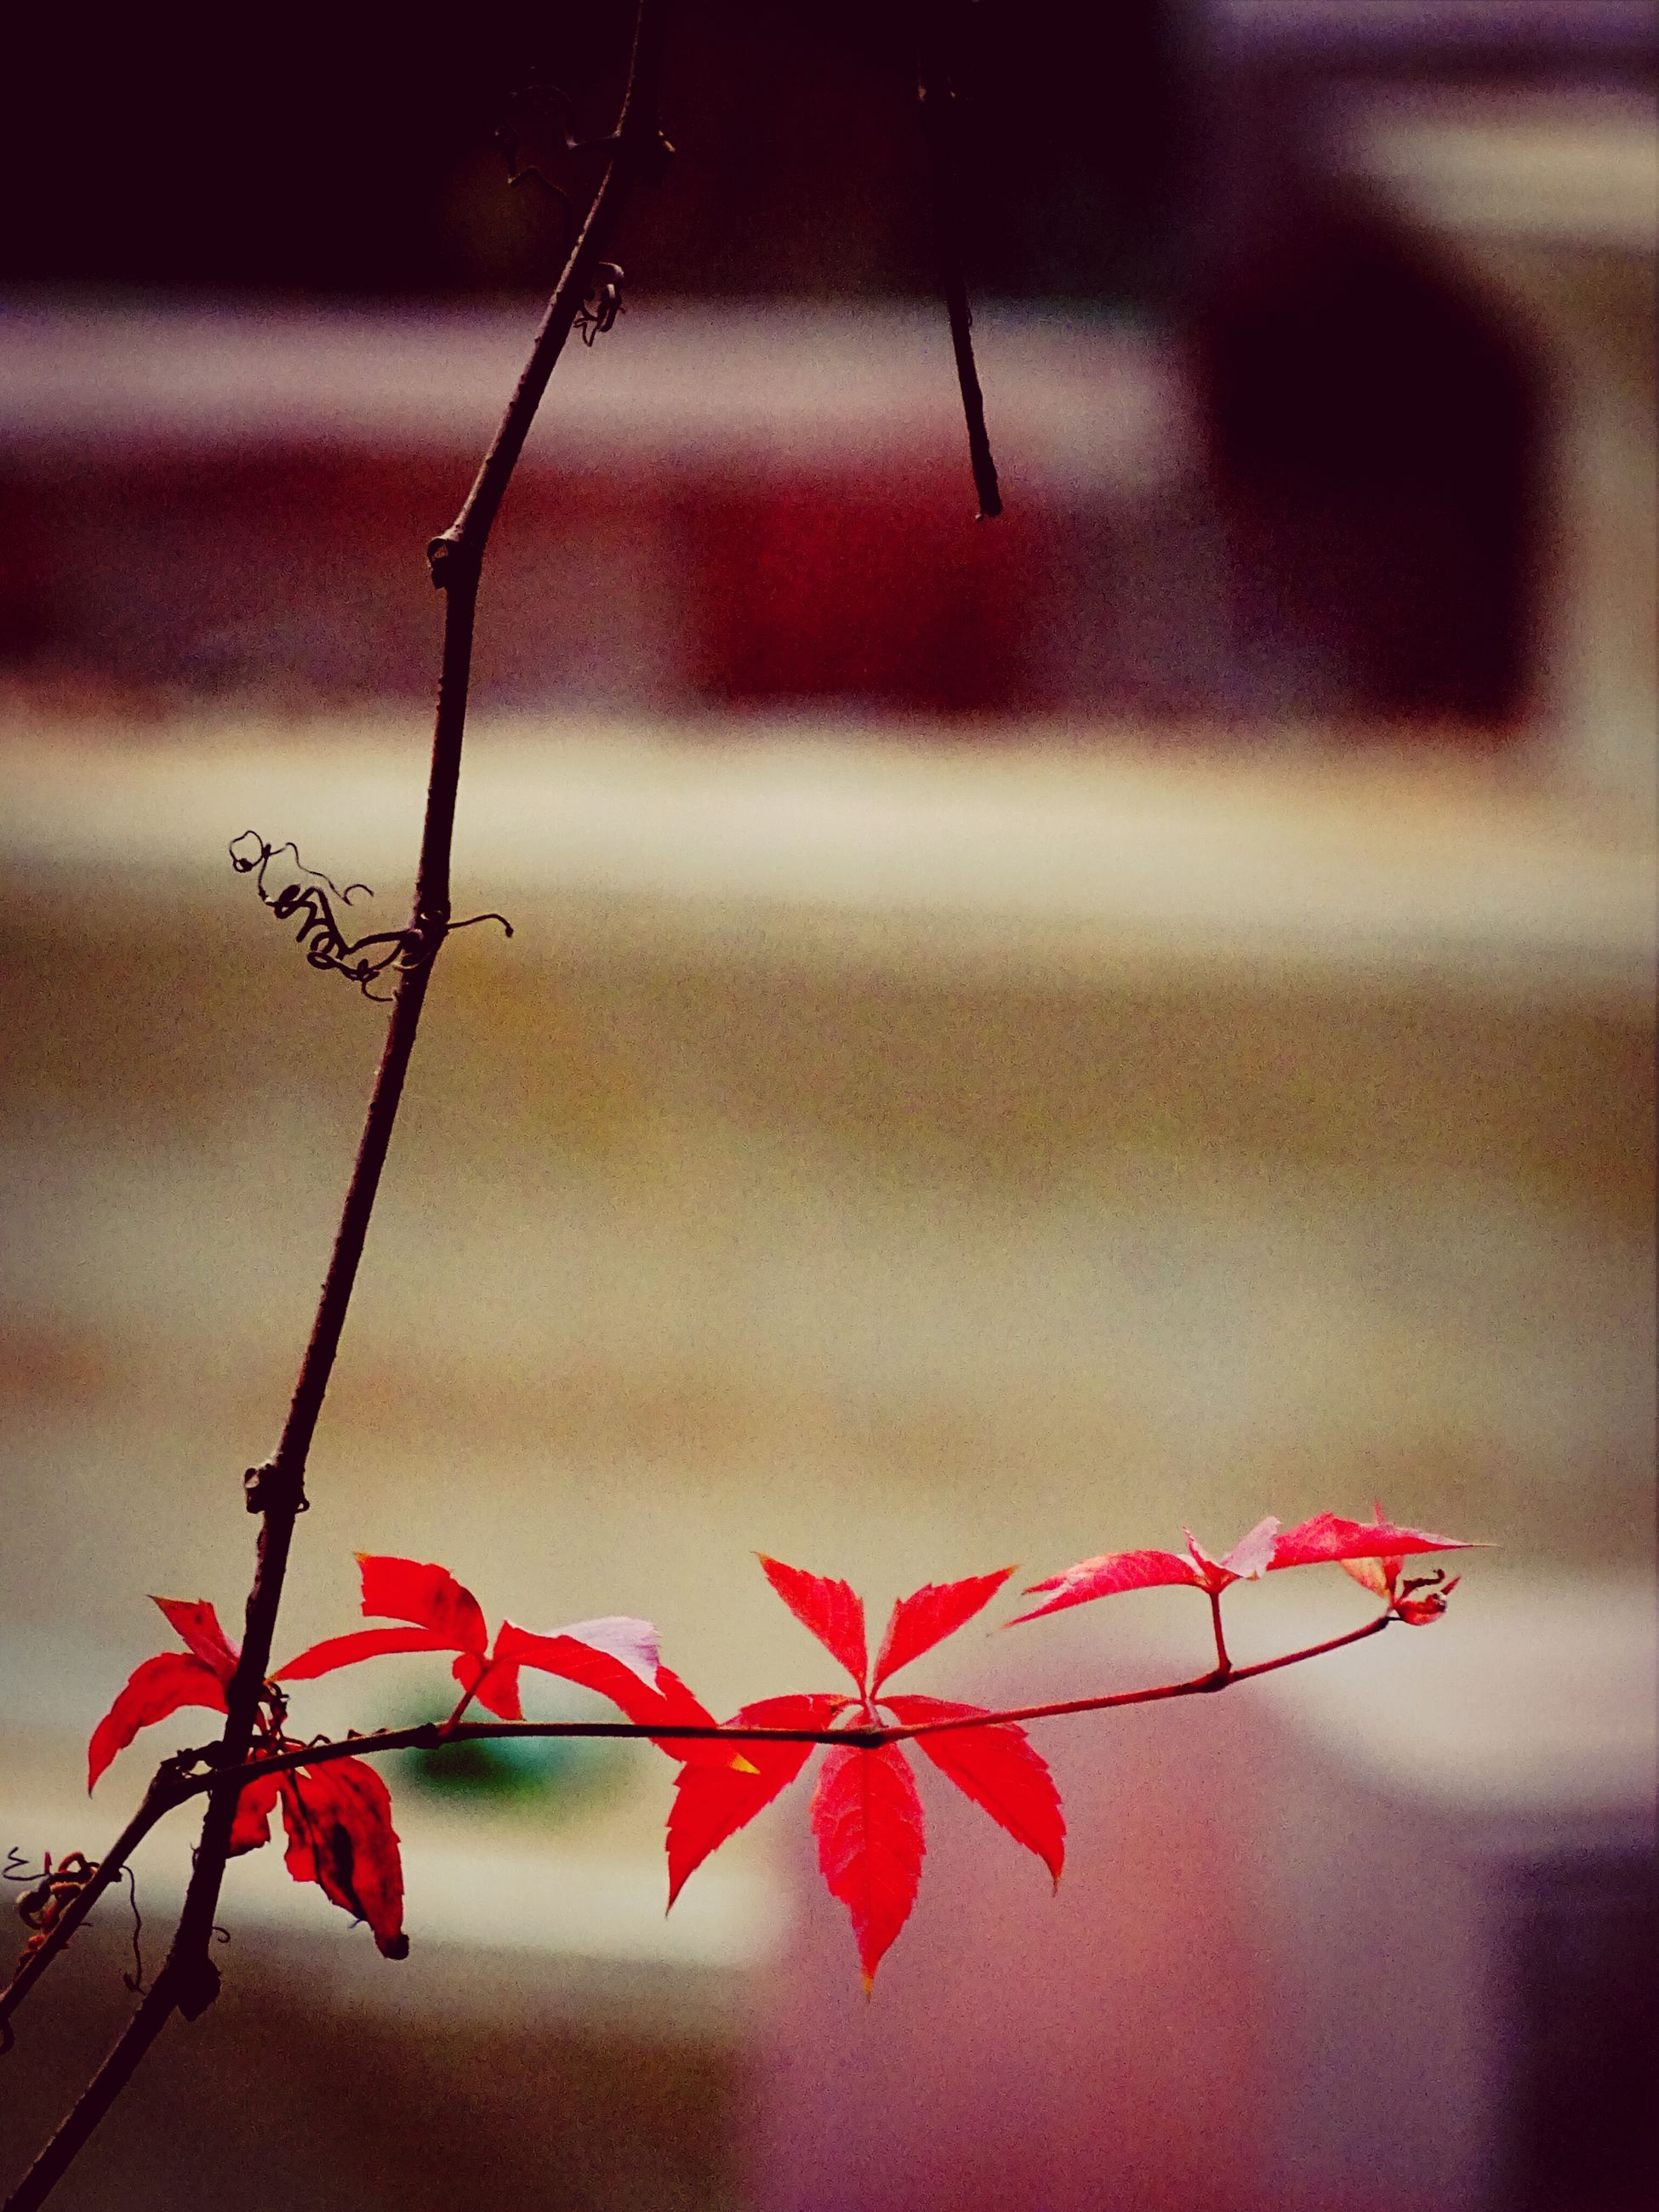 red, focus on foreground, flower, close-up, stem, branch, growth, plant, twig, fragility, freshness, nature, leaf, hanging, selective focus, beauty in nature, wall - building feature, day, outdoors